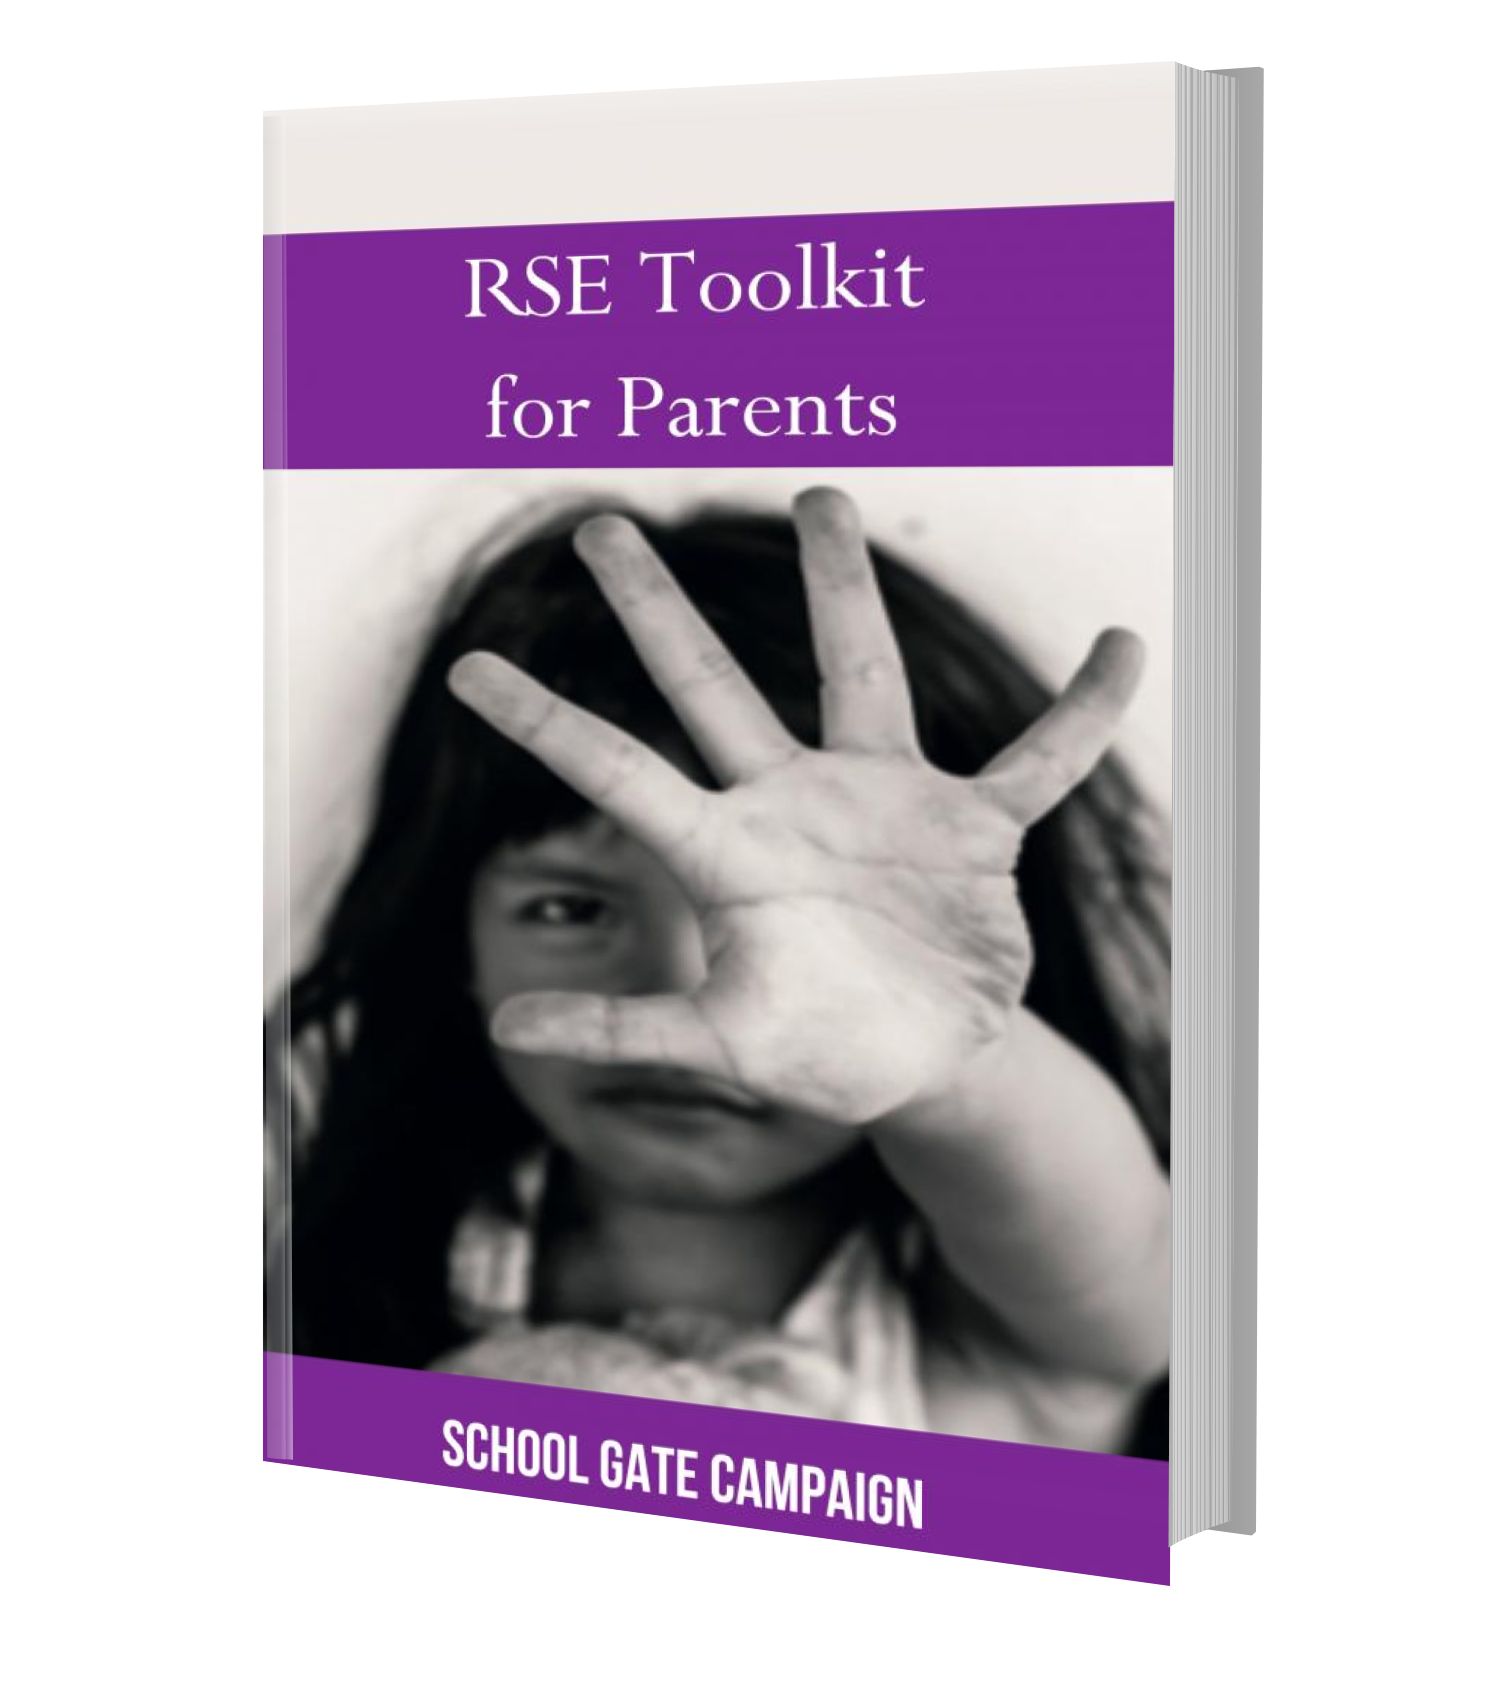 Relationships and sex education (RSE) School Gate Campaign